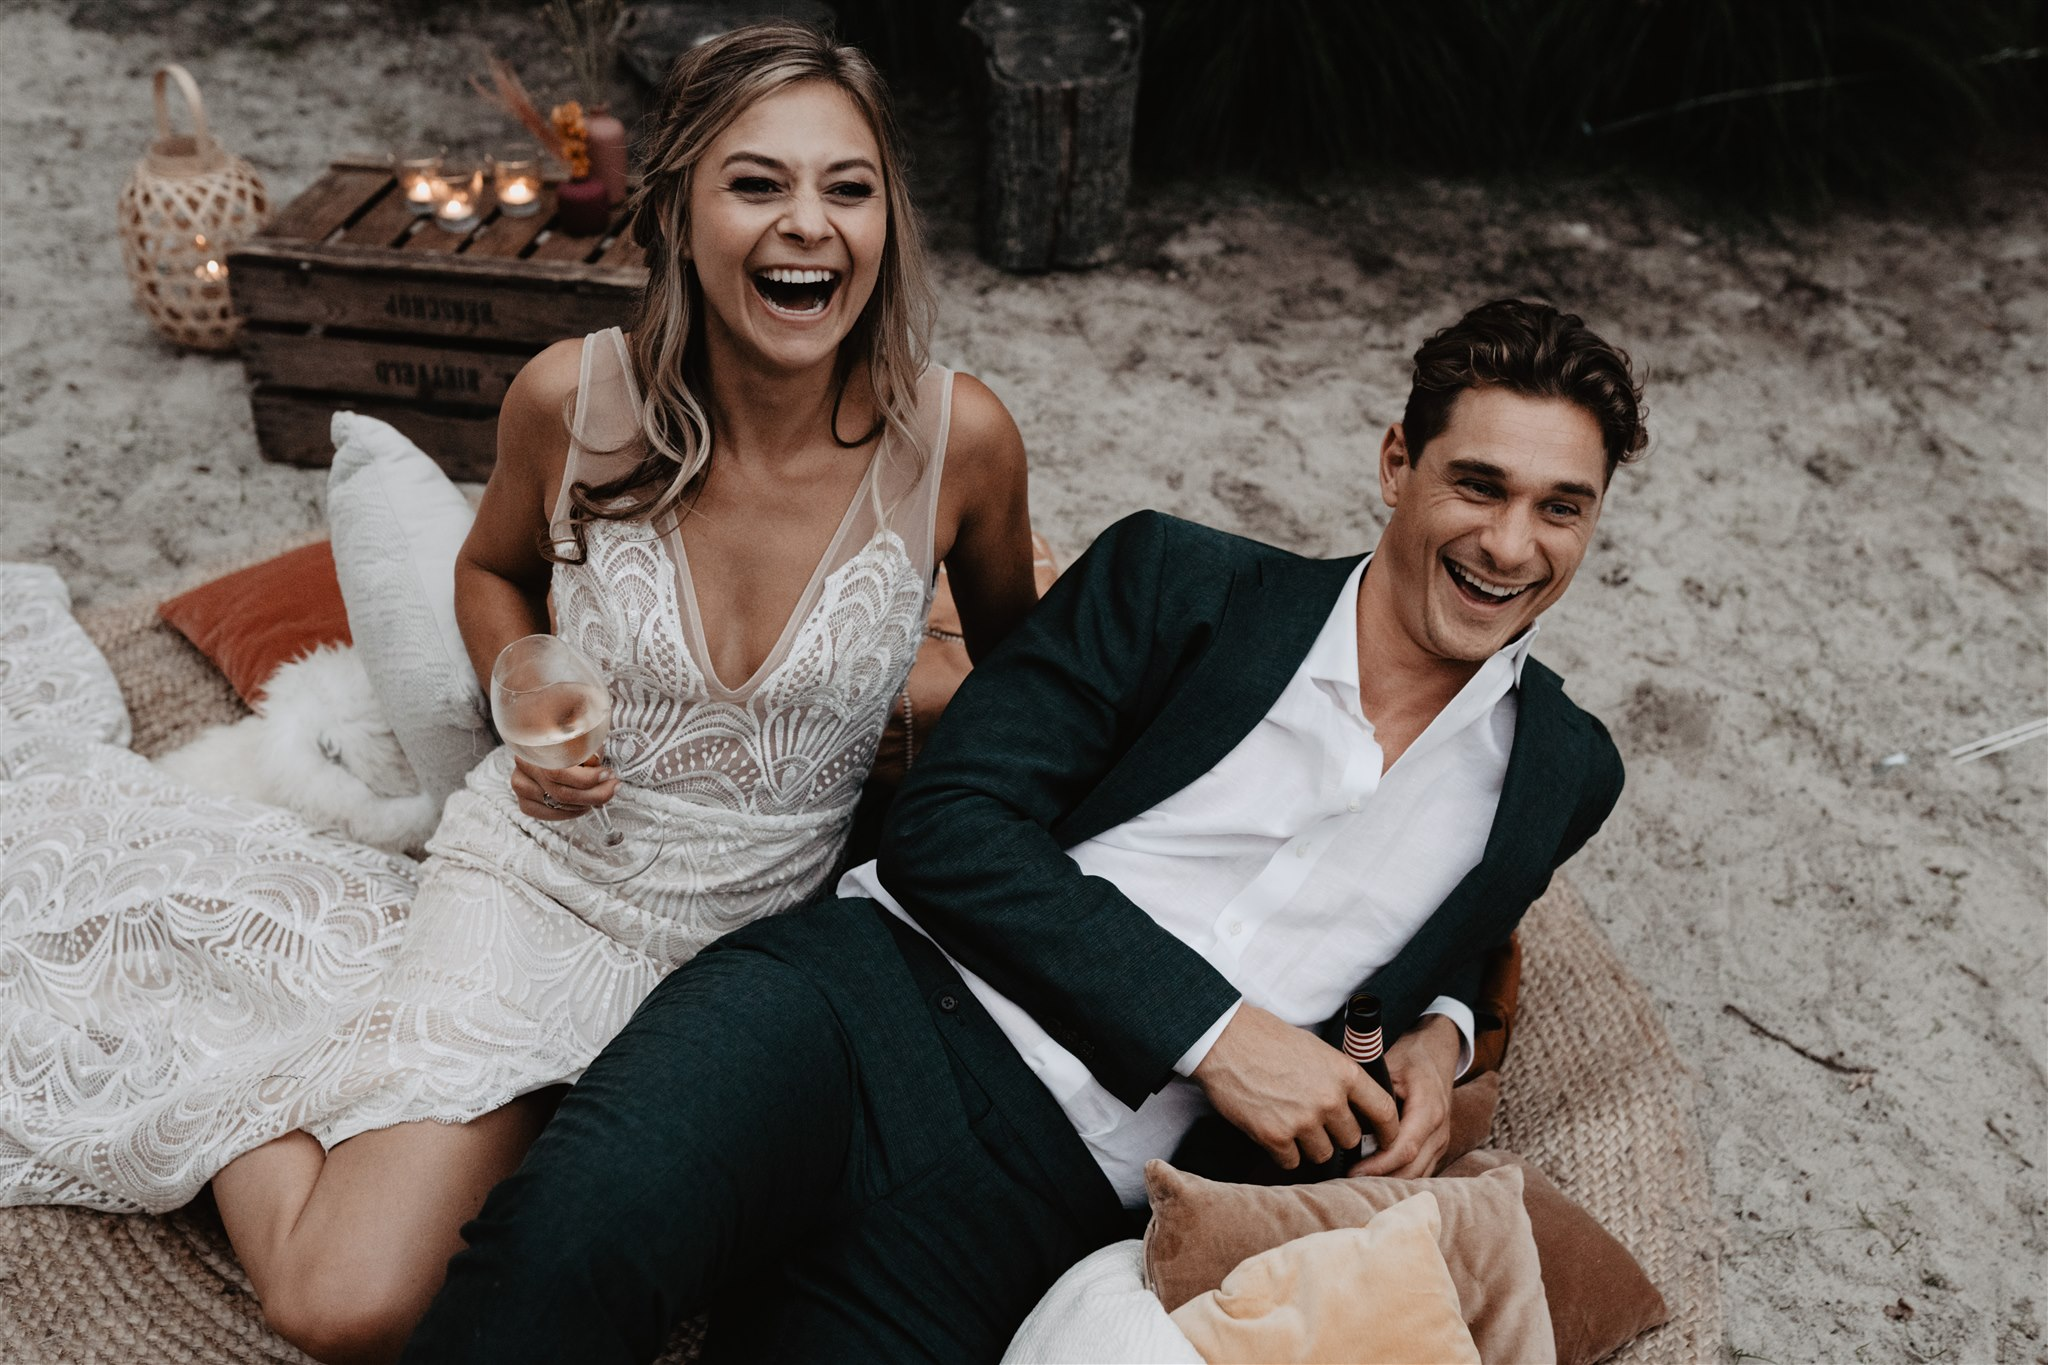 Bride and groom laughing laying barefoot on the sand